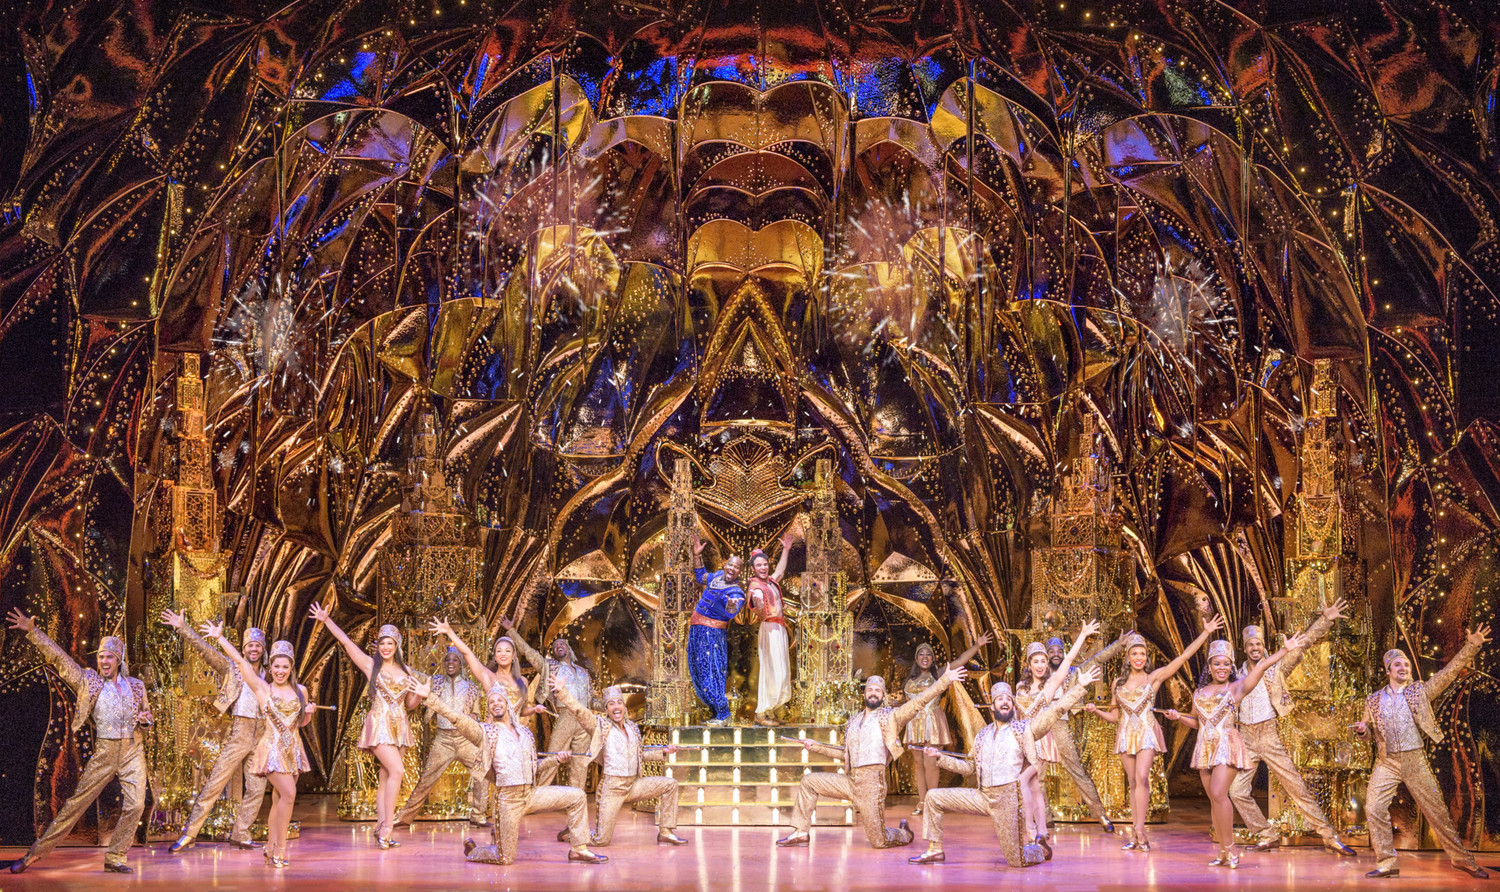 BWW Review: ALADDIN Finds Gold With its Own Cave of Wonders at Orpheum Theater